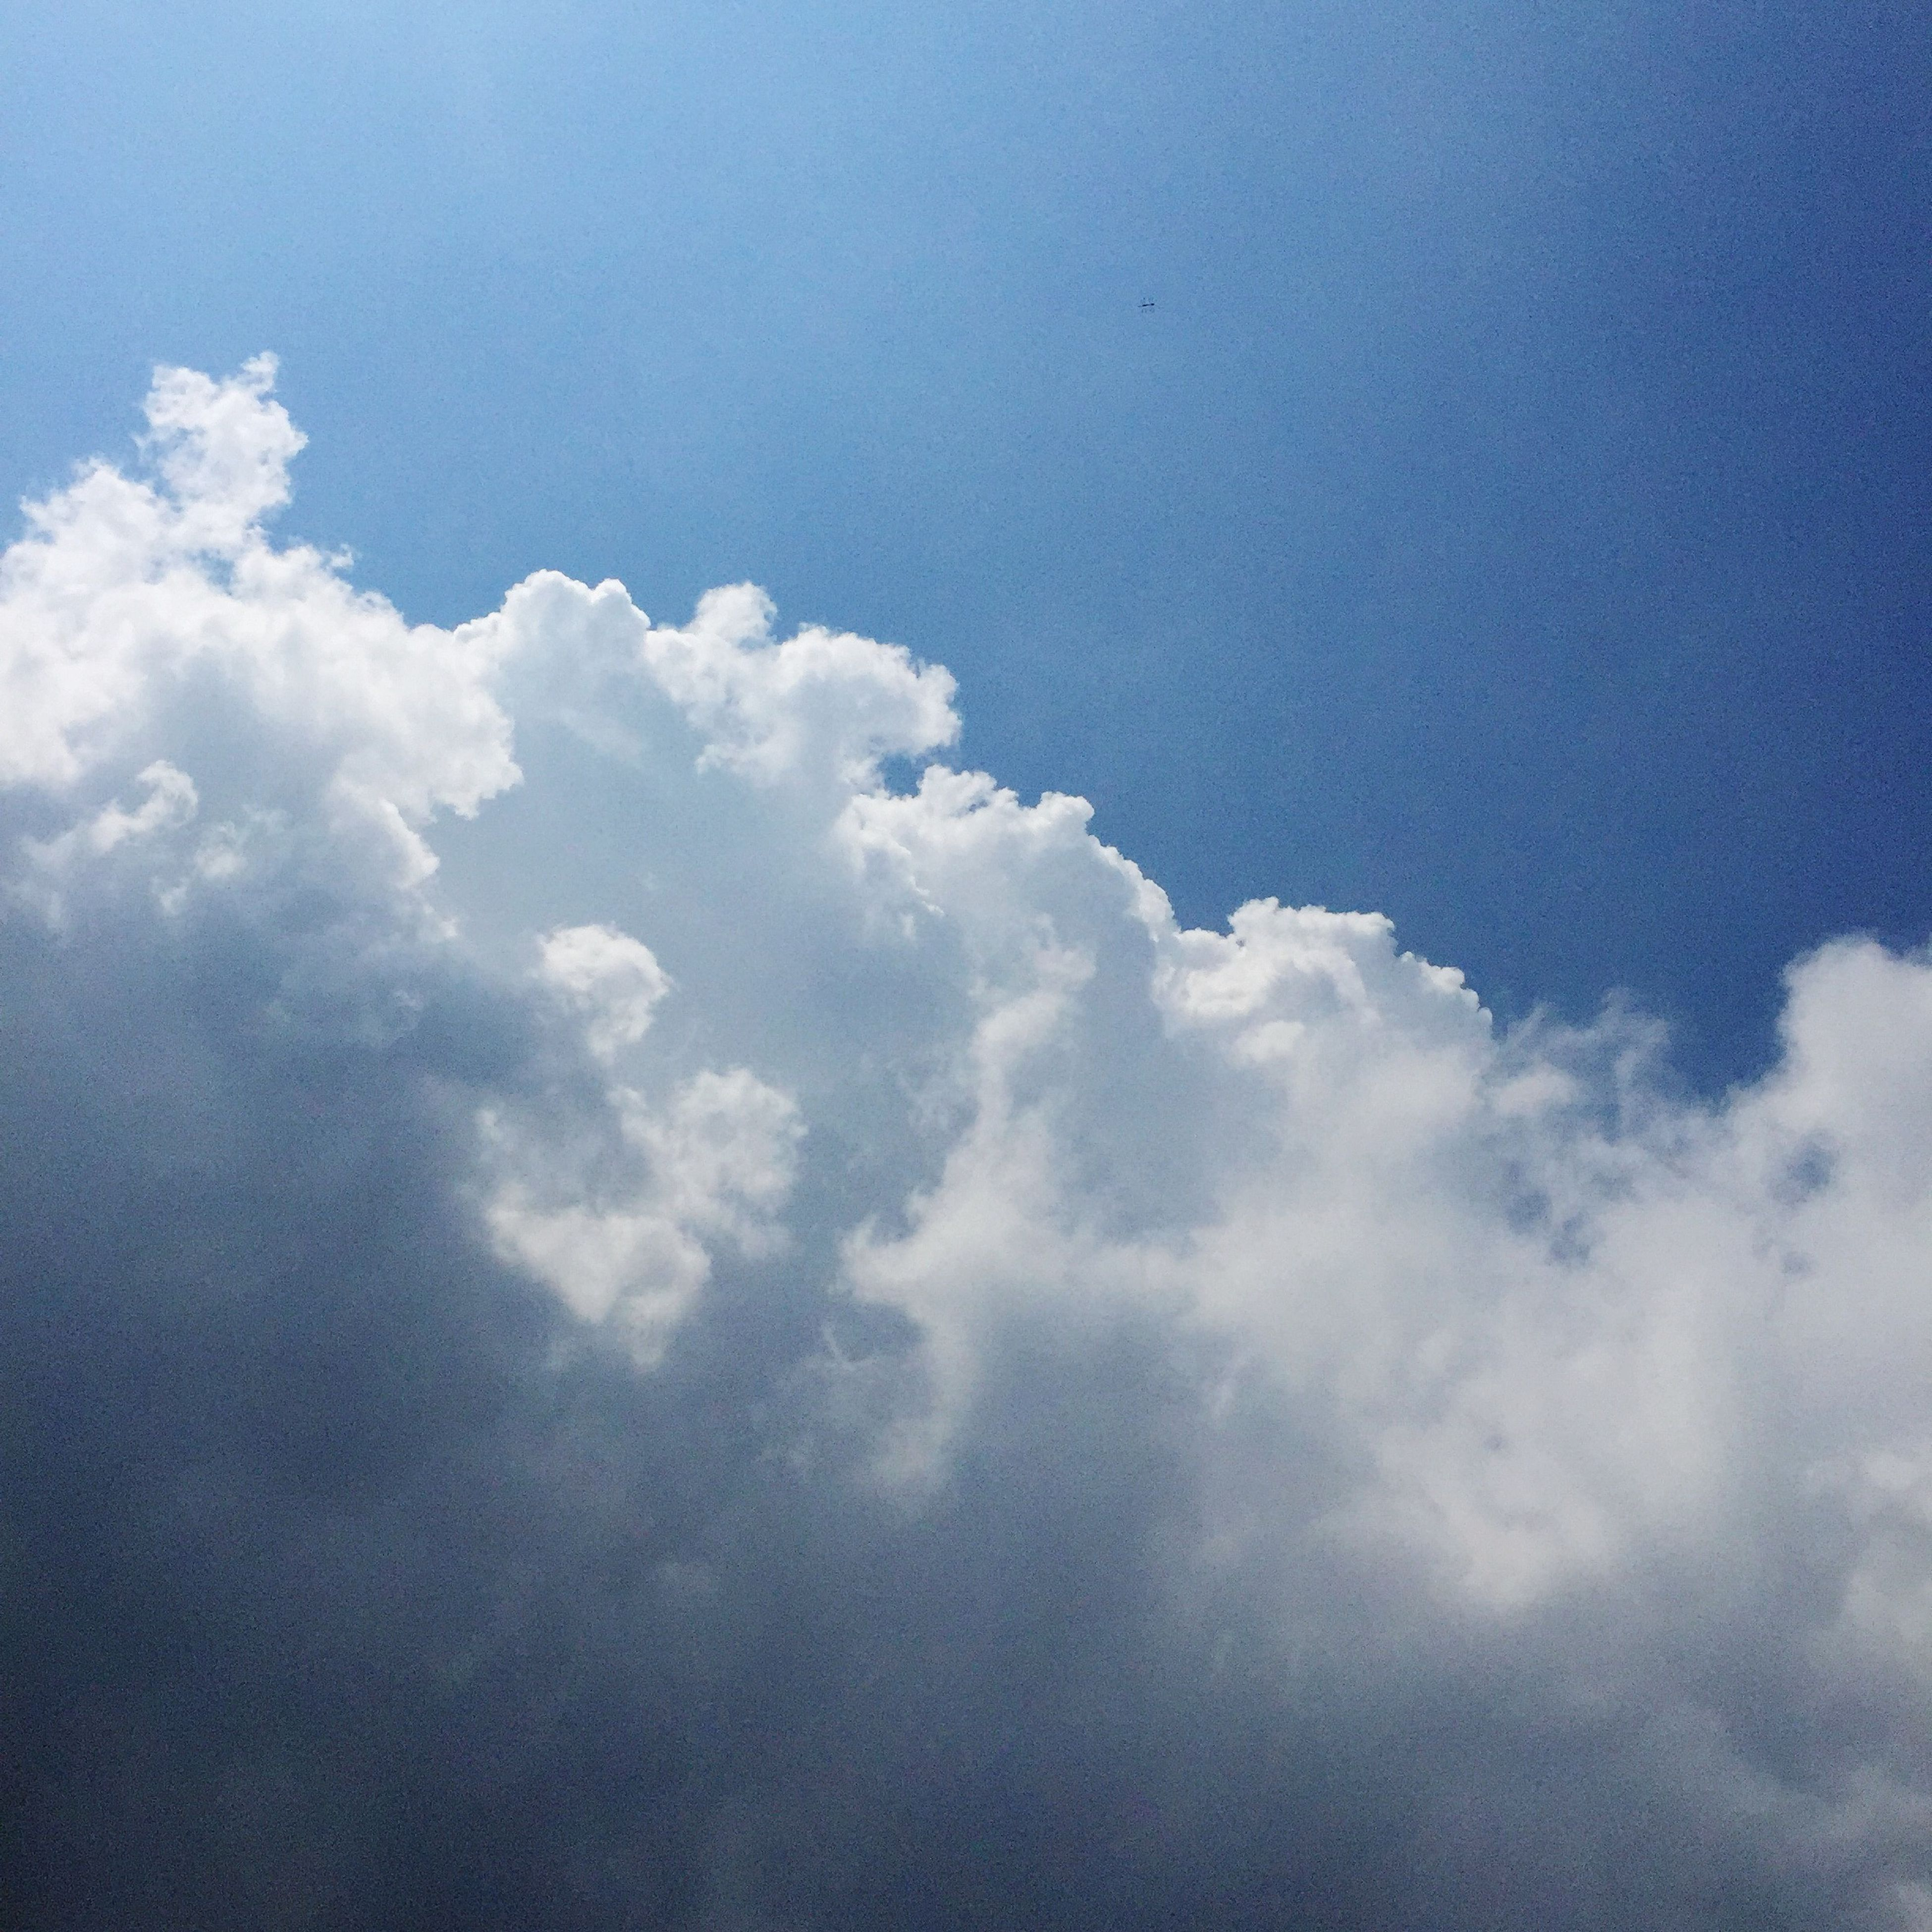 sky, low angle view, cloud - sky, blue, beauty in nature, tranquility, sky only, scenics, nature, tranquil scene, cloud, cloudy, cloudscape, backgrounds, idyllic, outdoors, day, white color, no people, majestic